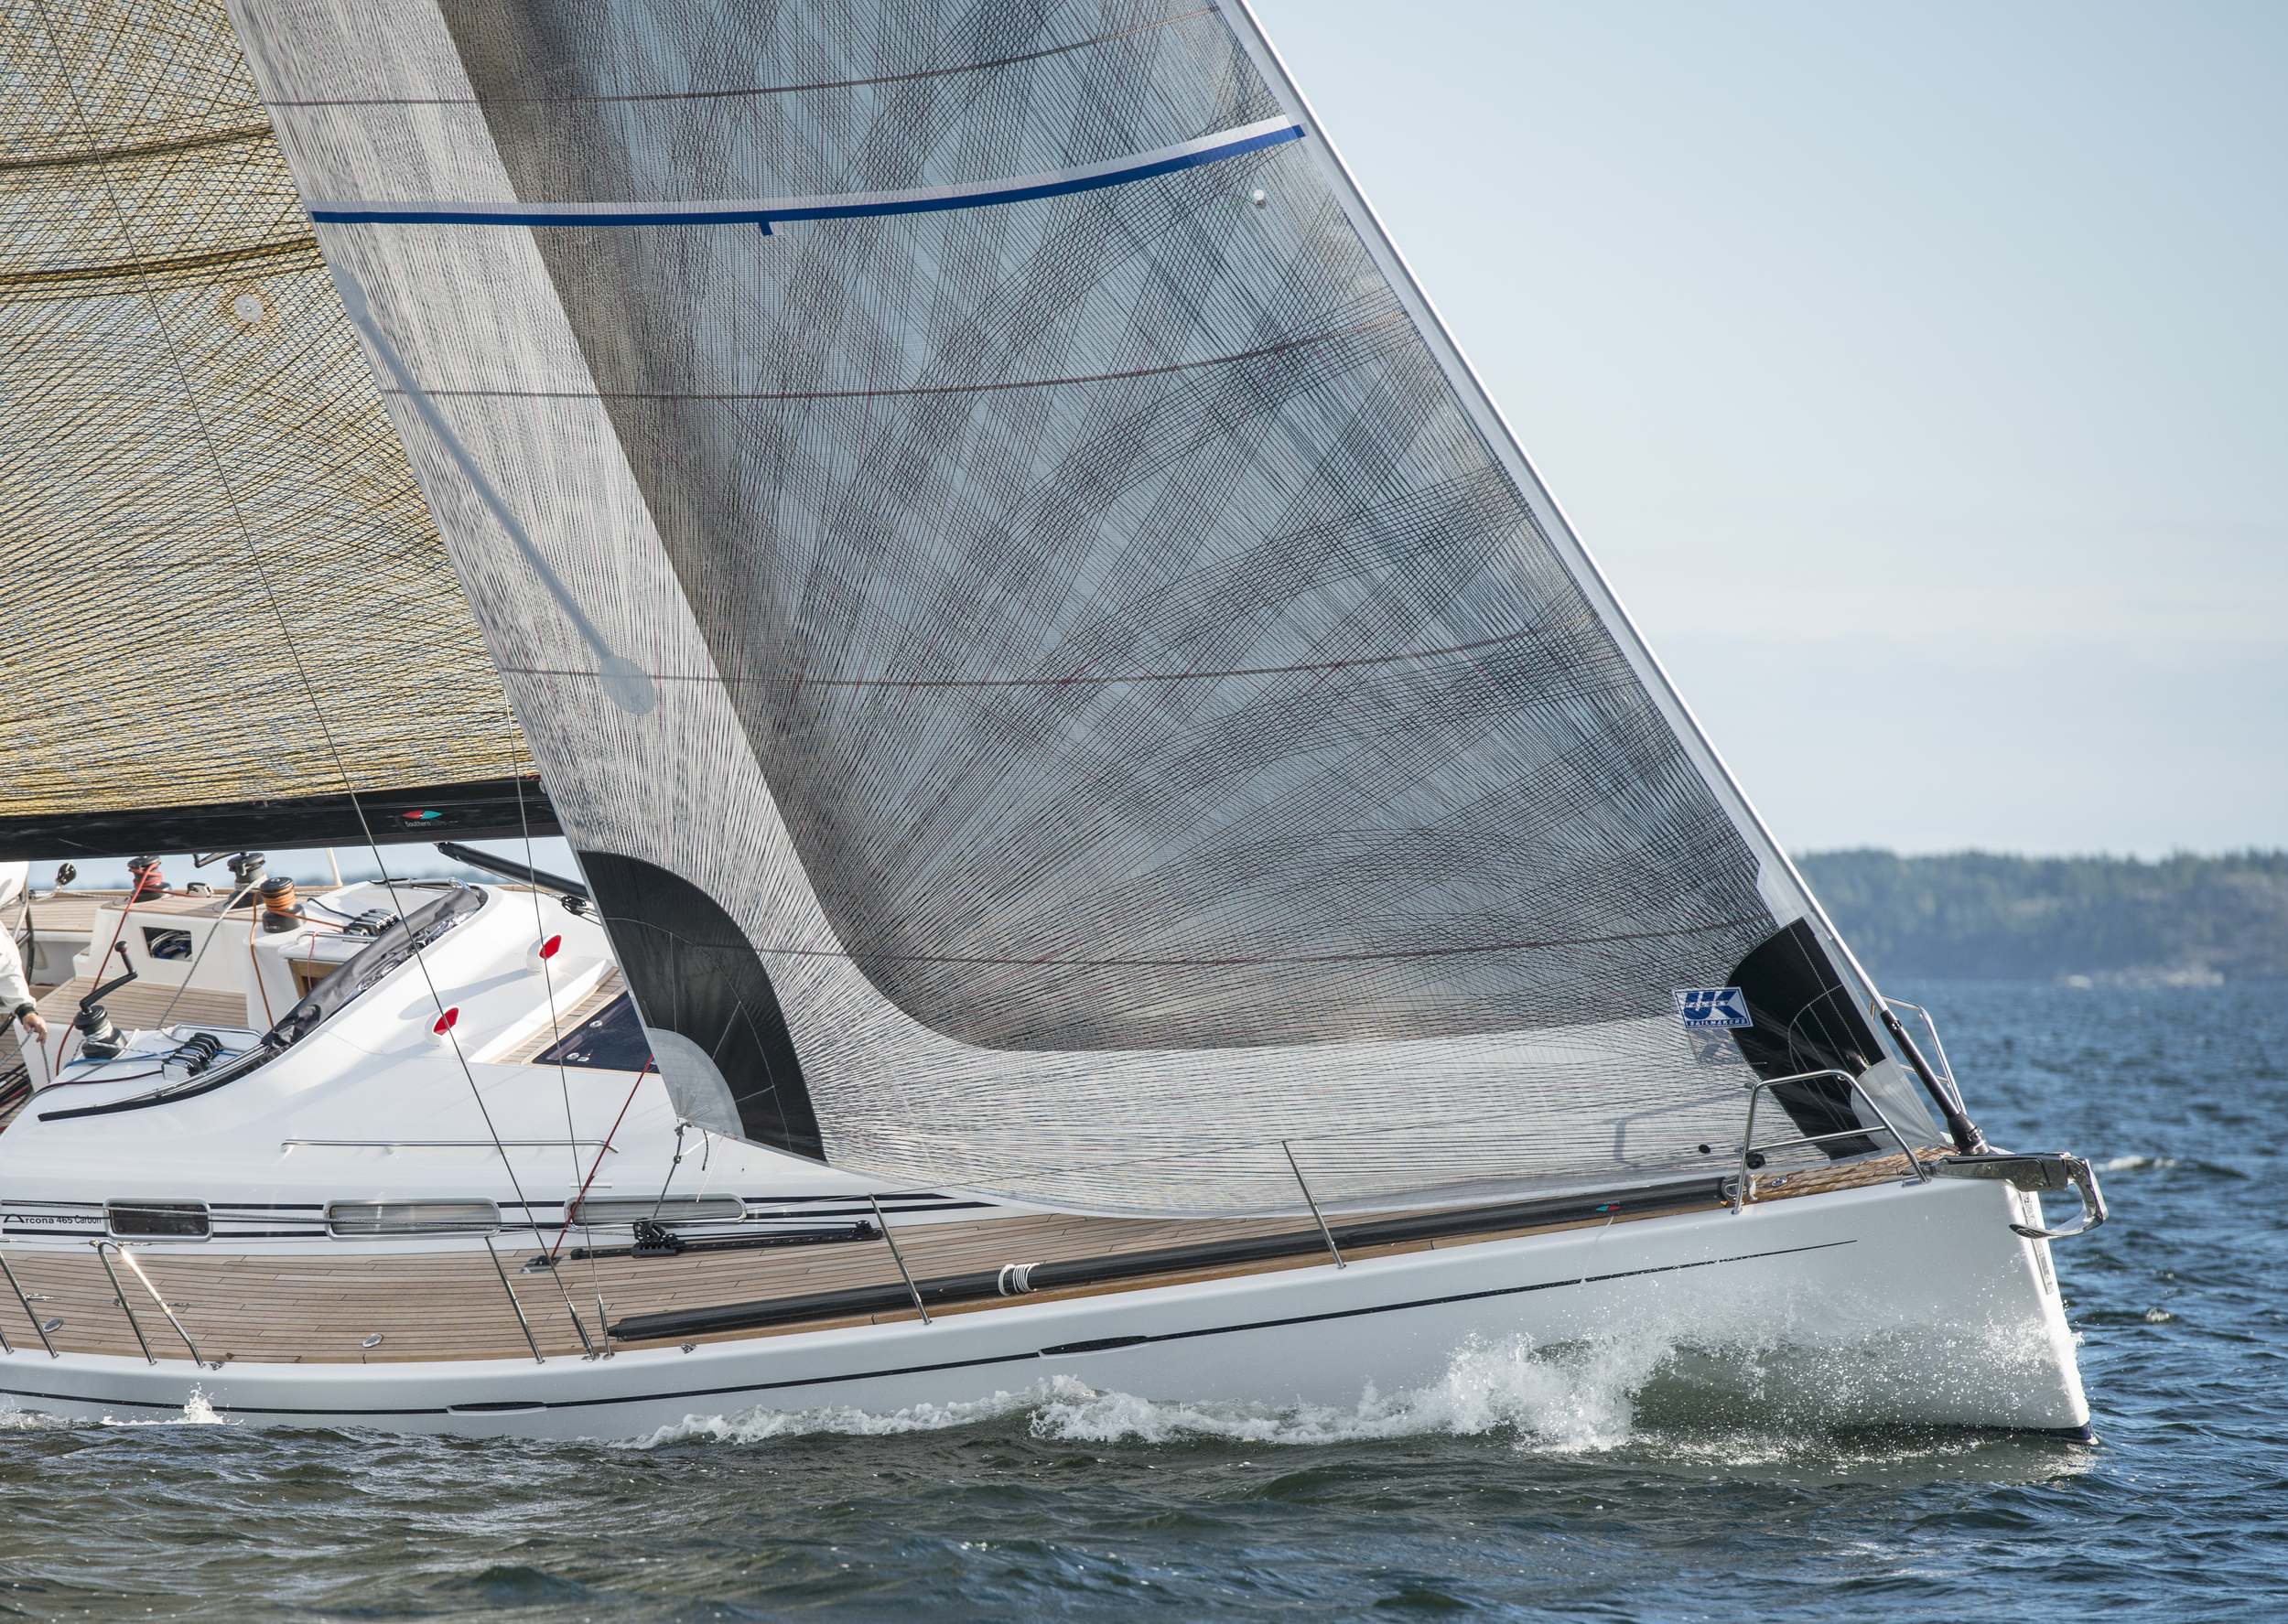 Arcane 465 Carbon sailing with an X-Drive Carbon furling jib with vertical battens.